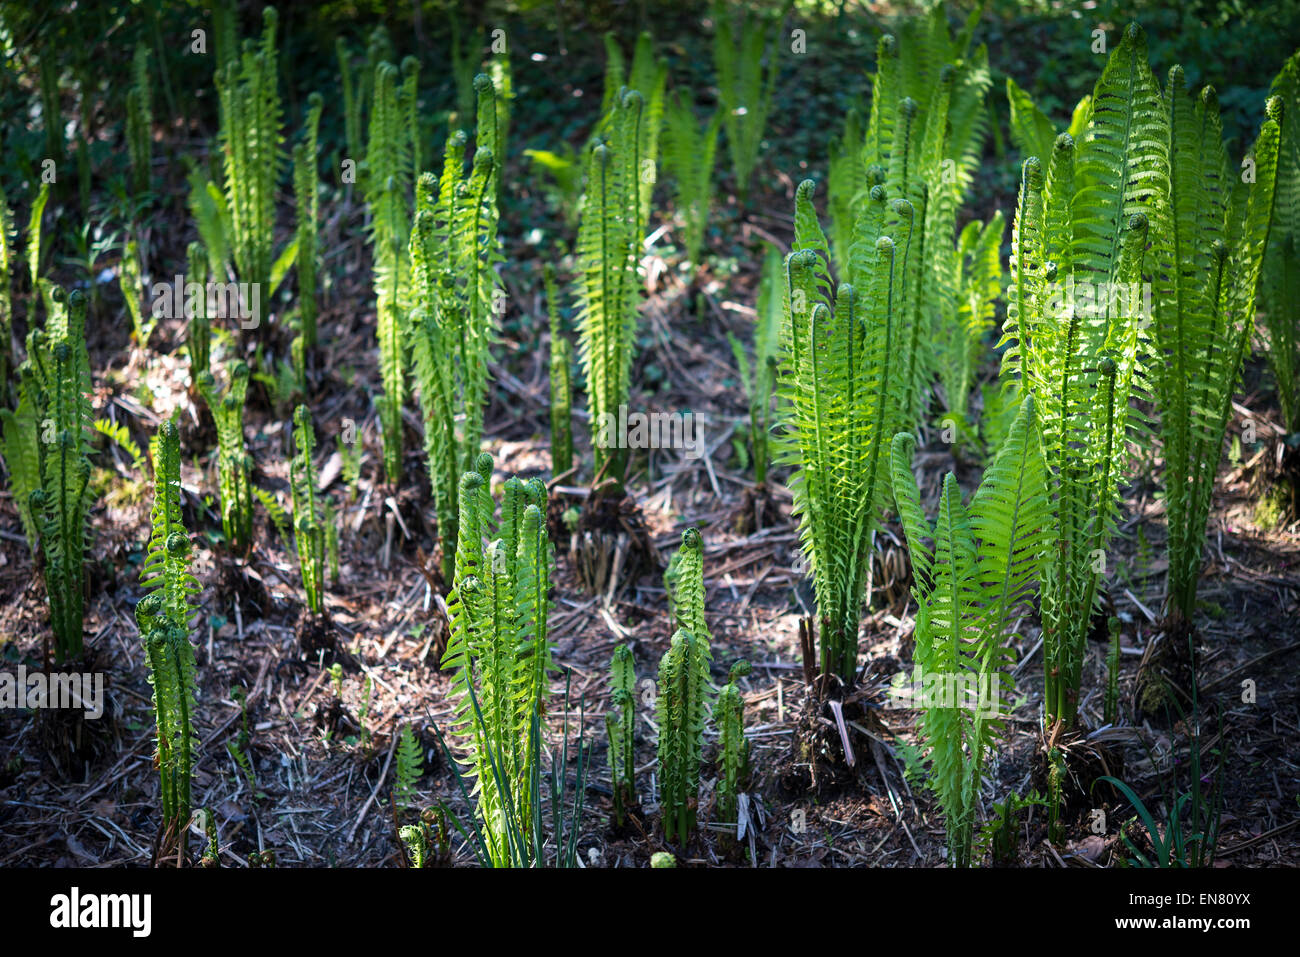 Matteuccia Struthiopteris (shuttlecock fern) coming into growth at Sheffield botanical gardens. - Stock Image